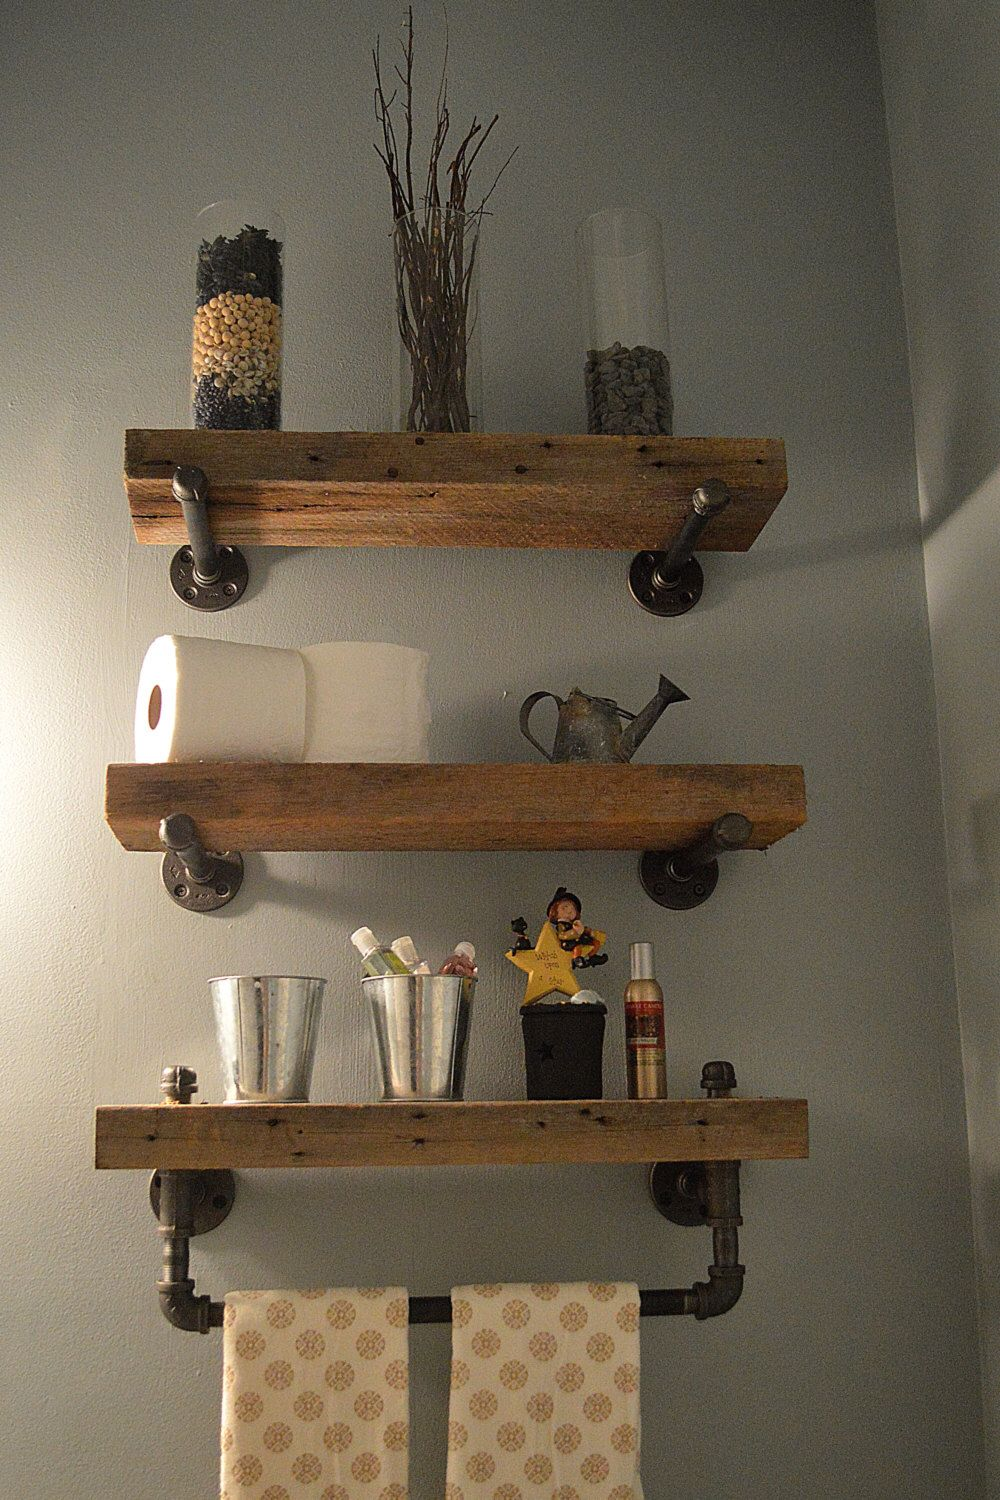 Reclaimed Barn Wood Bathroom Shelves | Mudroom ideas | Pinterest ...